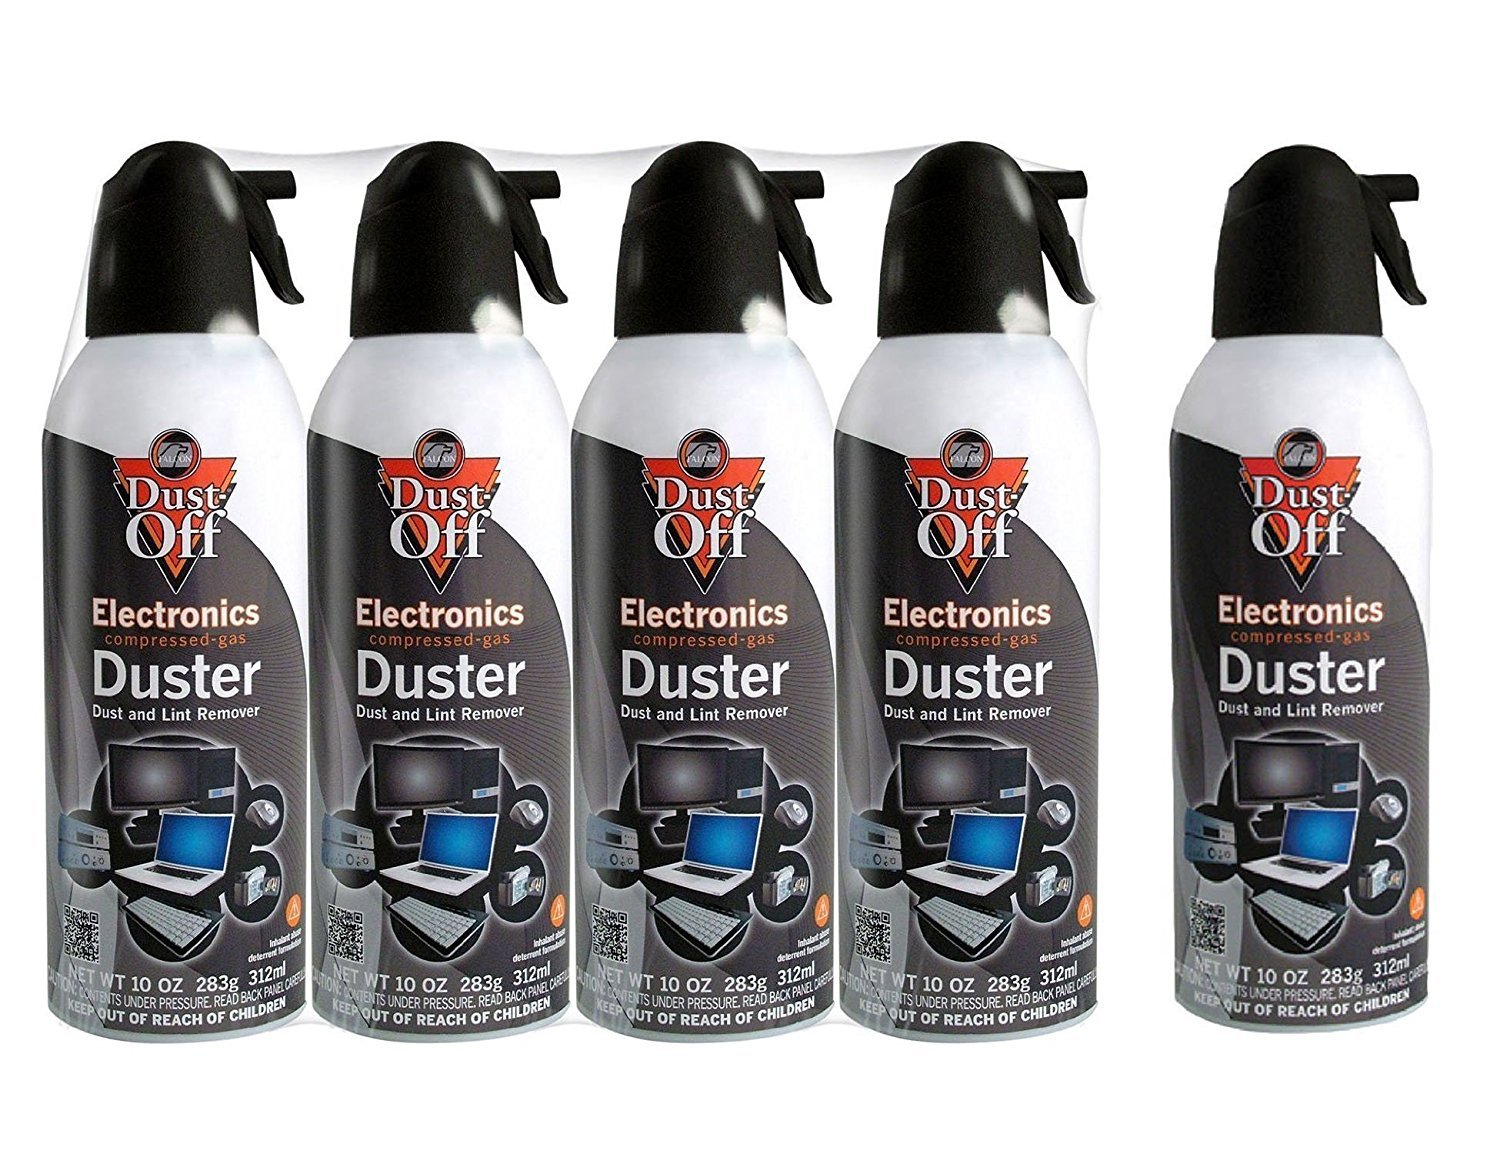 Dust-Off Disposable Compressed Gas Duster, 10 oz Cans - 5 Packs